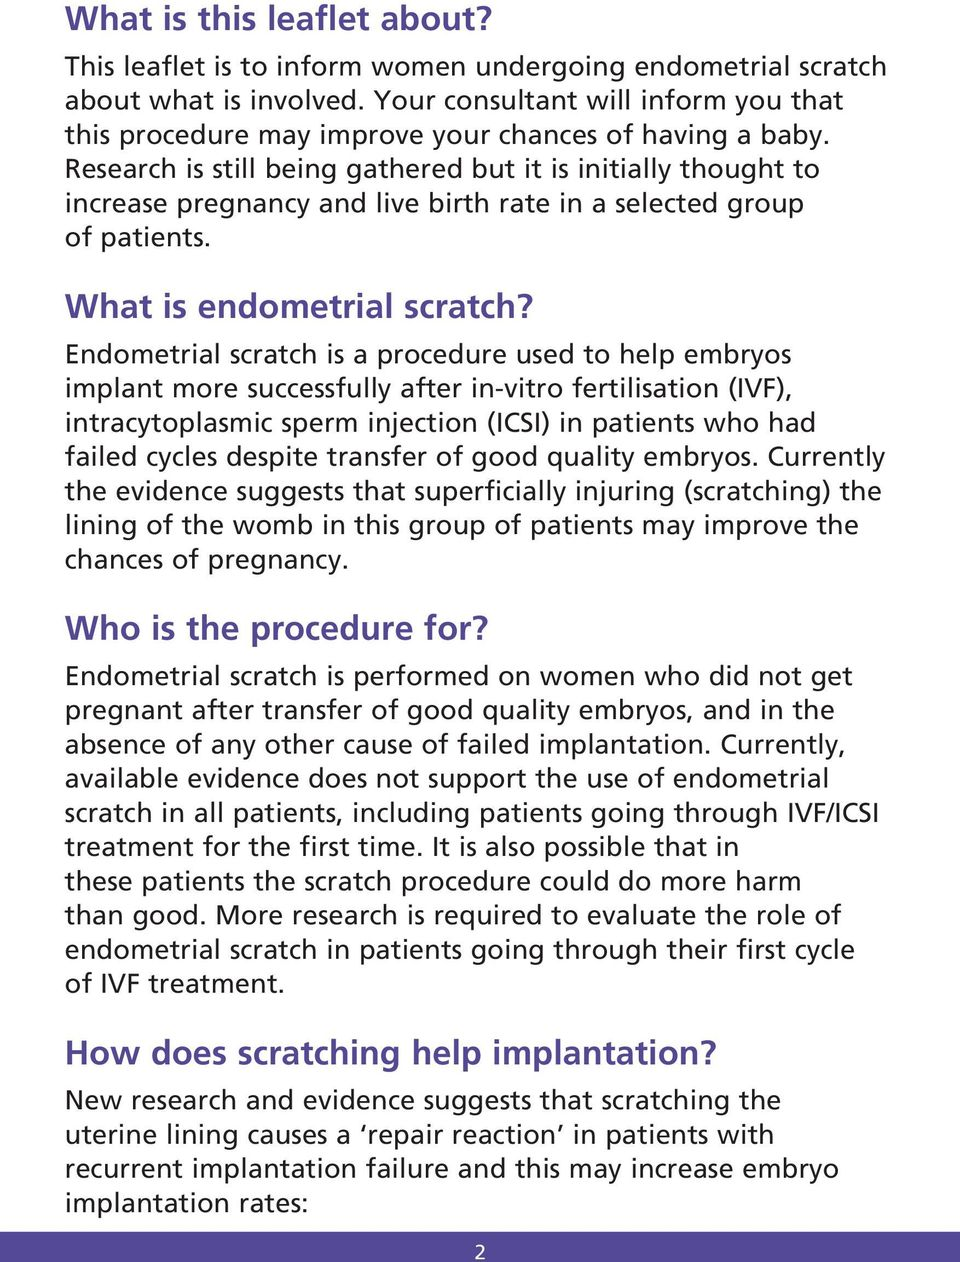 Research is still being gathered but it is initially thought to increase pregnancy and live birth rate in a selected group of patients. What is endometrial scratch?